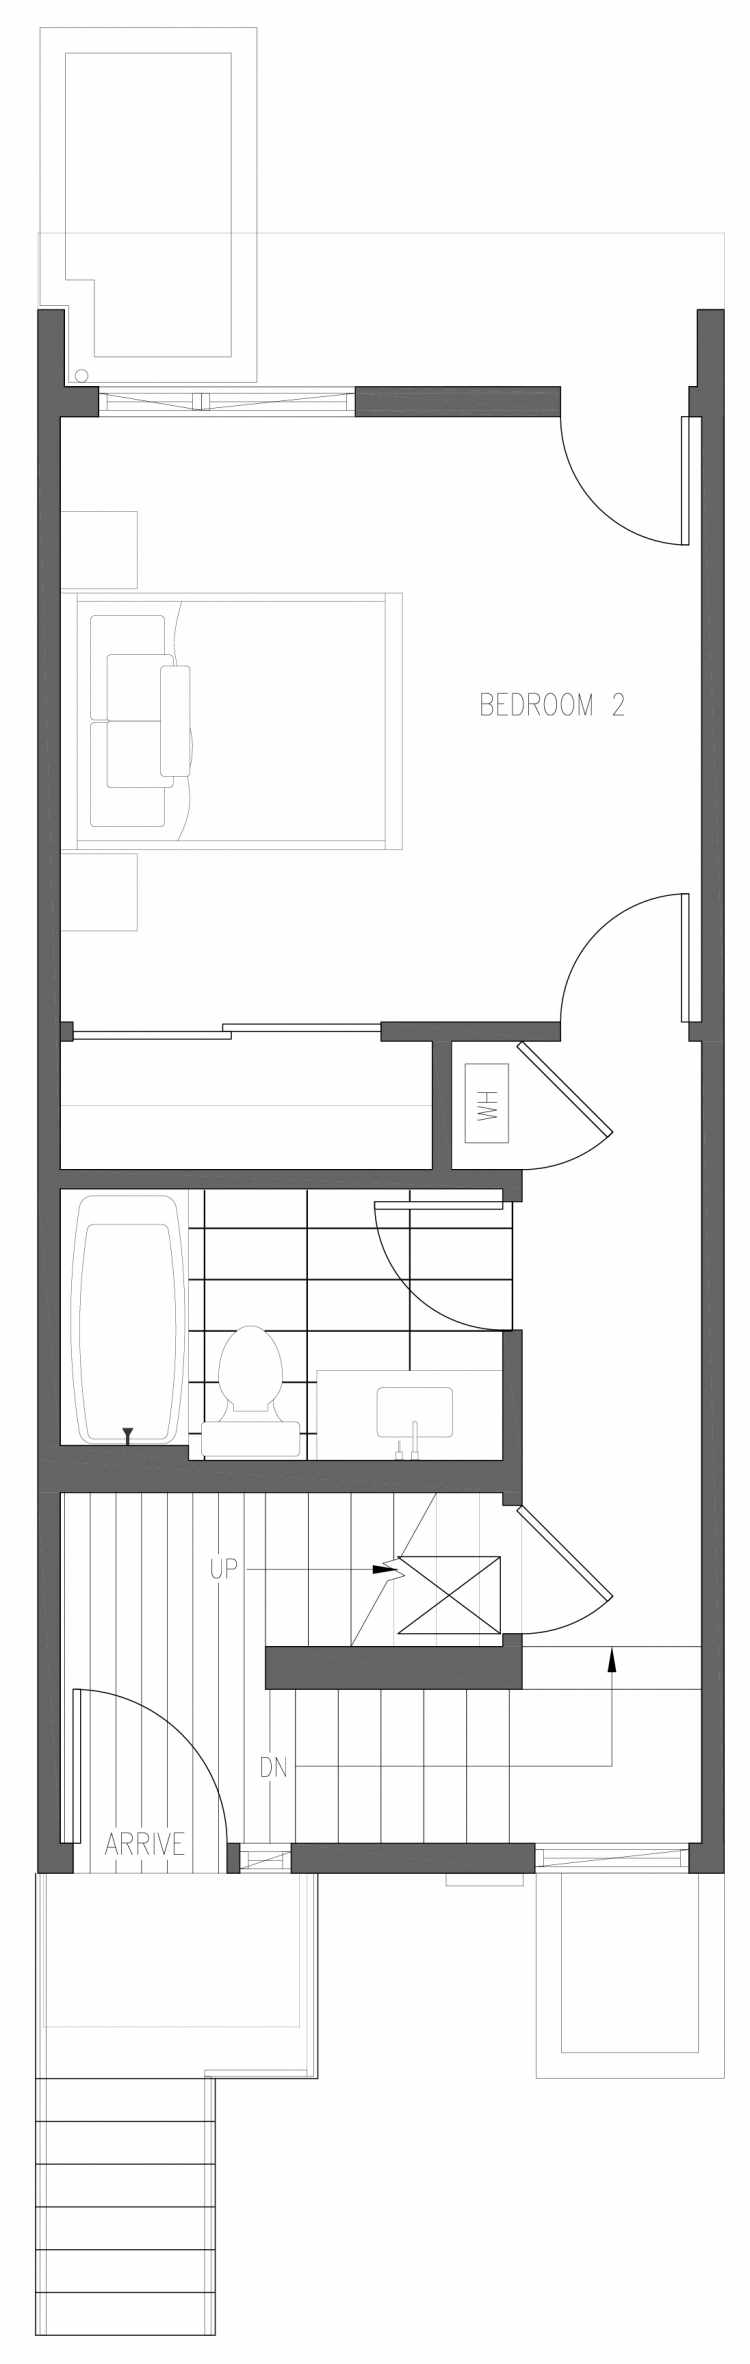 First Floor Plan of 6415 14th Ave NW, One of the Oleana Townhomes in Ballard by Isola Homes